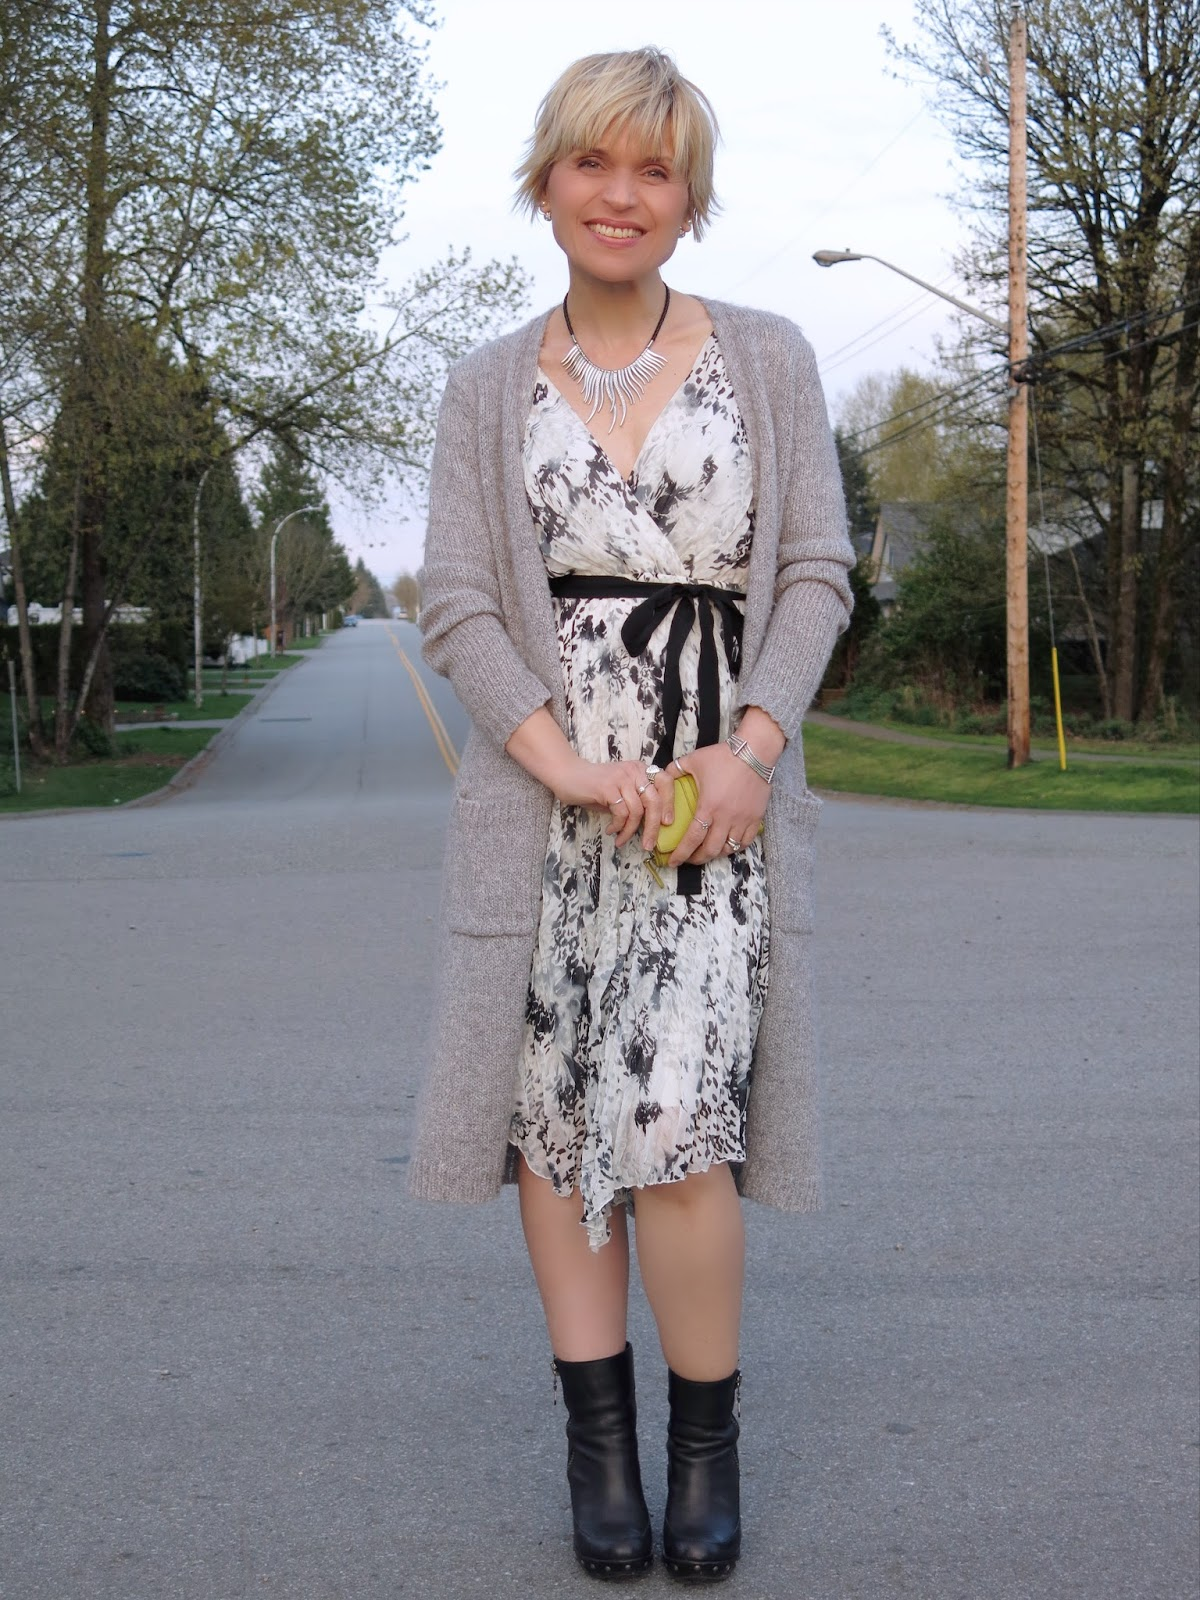 styling a printed chiffon dress with booties and a long cardigan